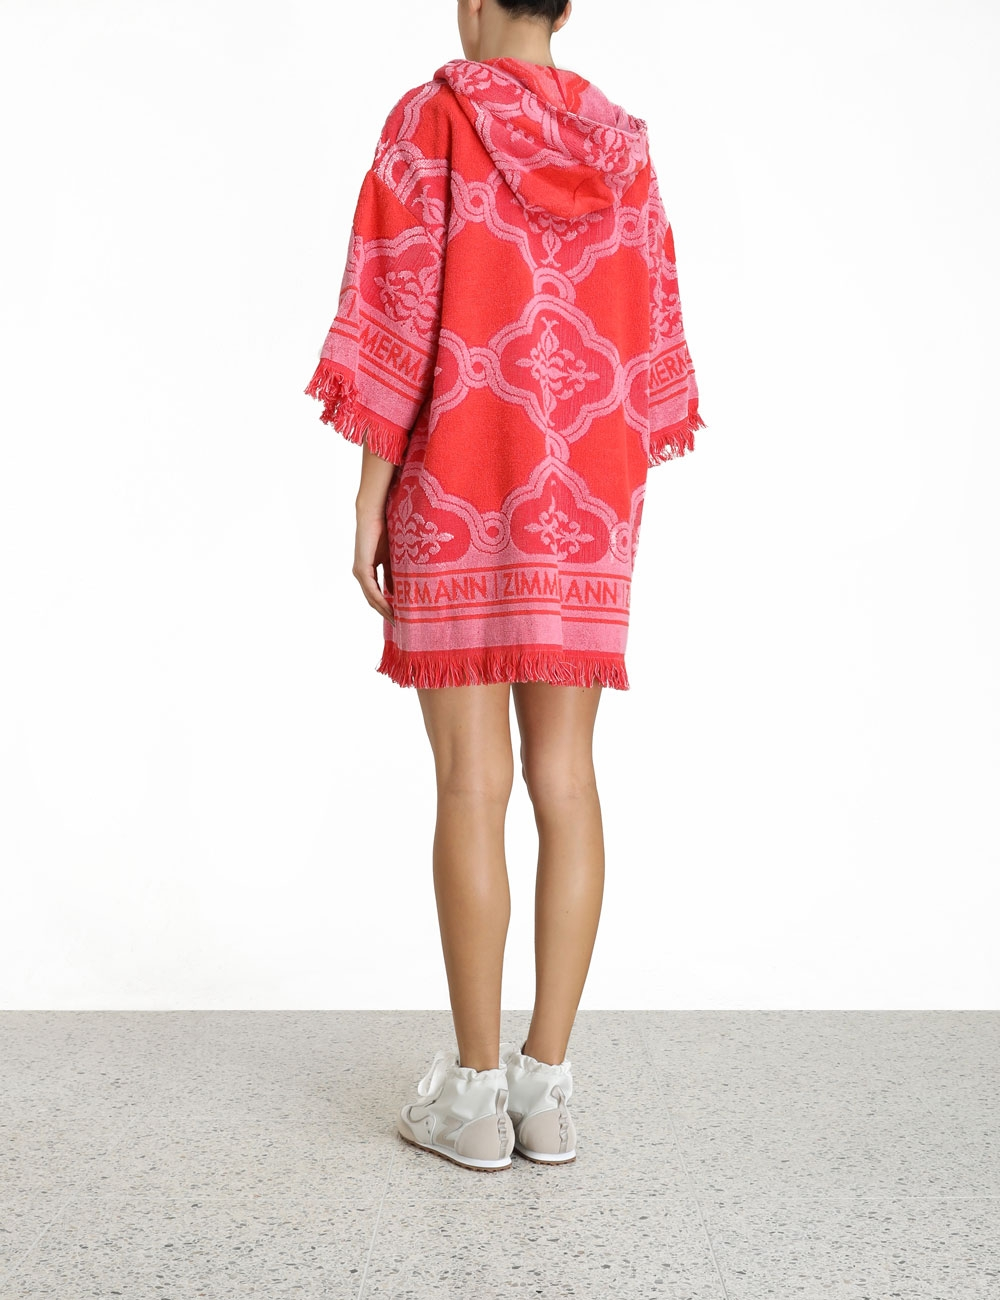 Poppy Terry Towel Dress